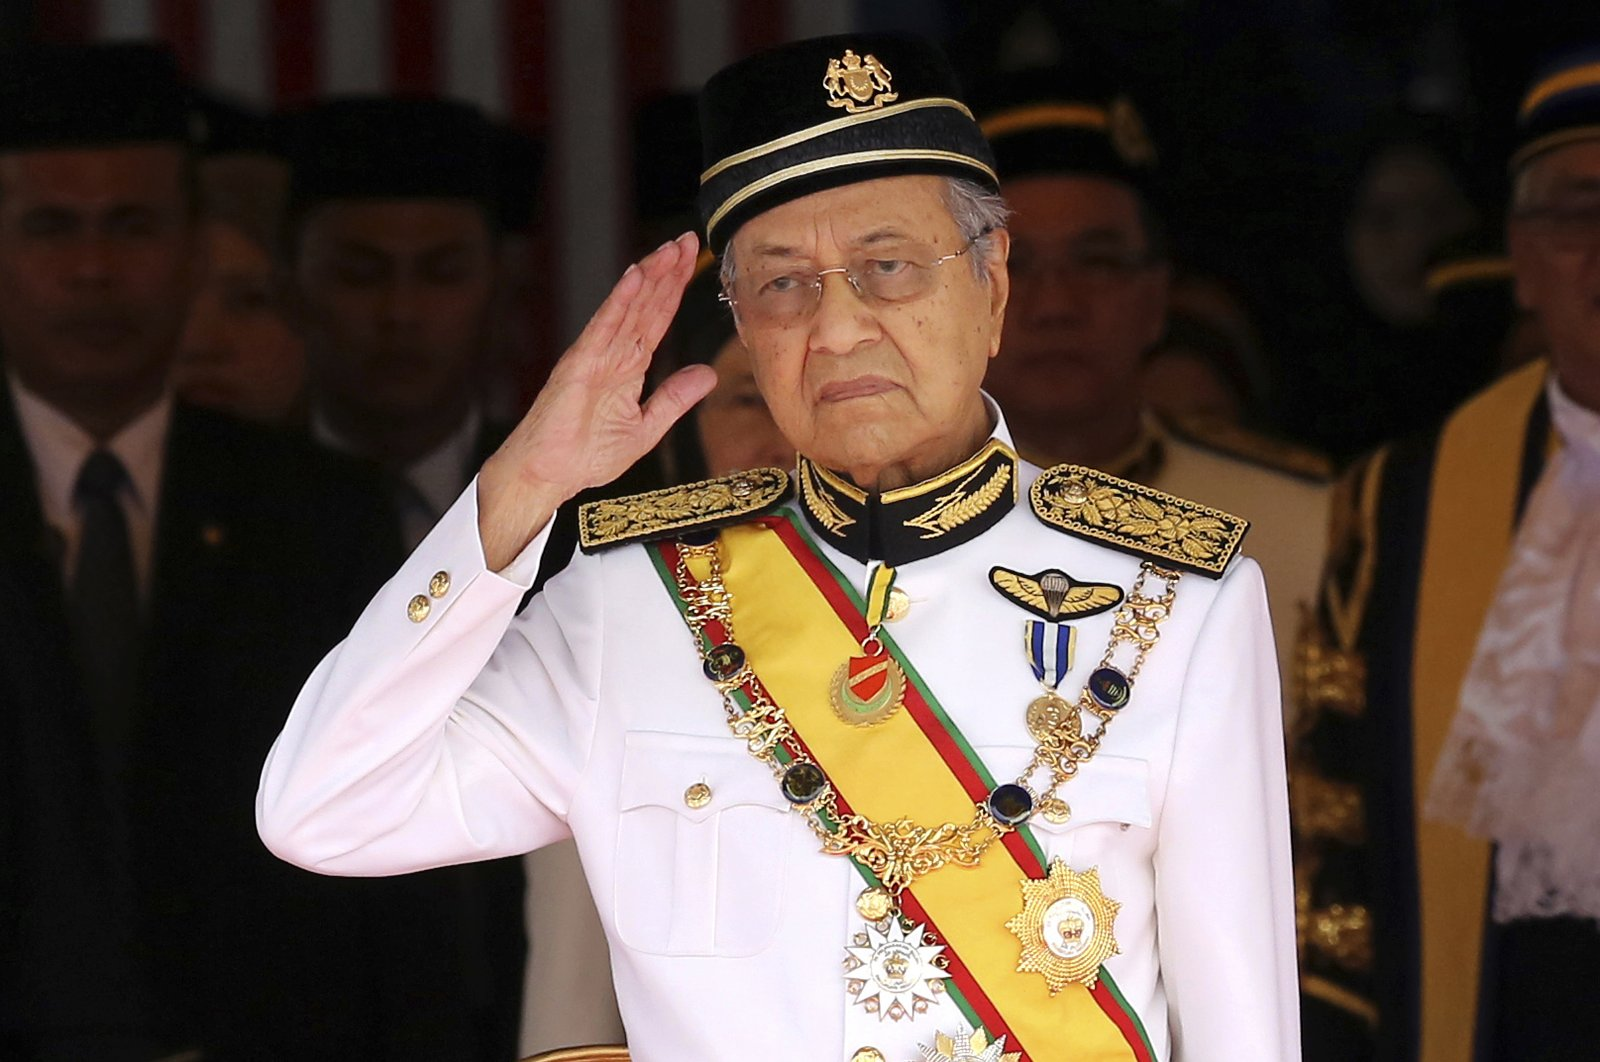 Malaysian ex-Prime Minister Mahathir Mohamad salutes during the opening of the 14th parliament session at the parliament house, Kuala Lumpur, July 17, 2018. (AP Photo)